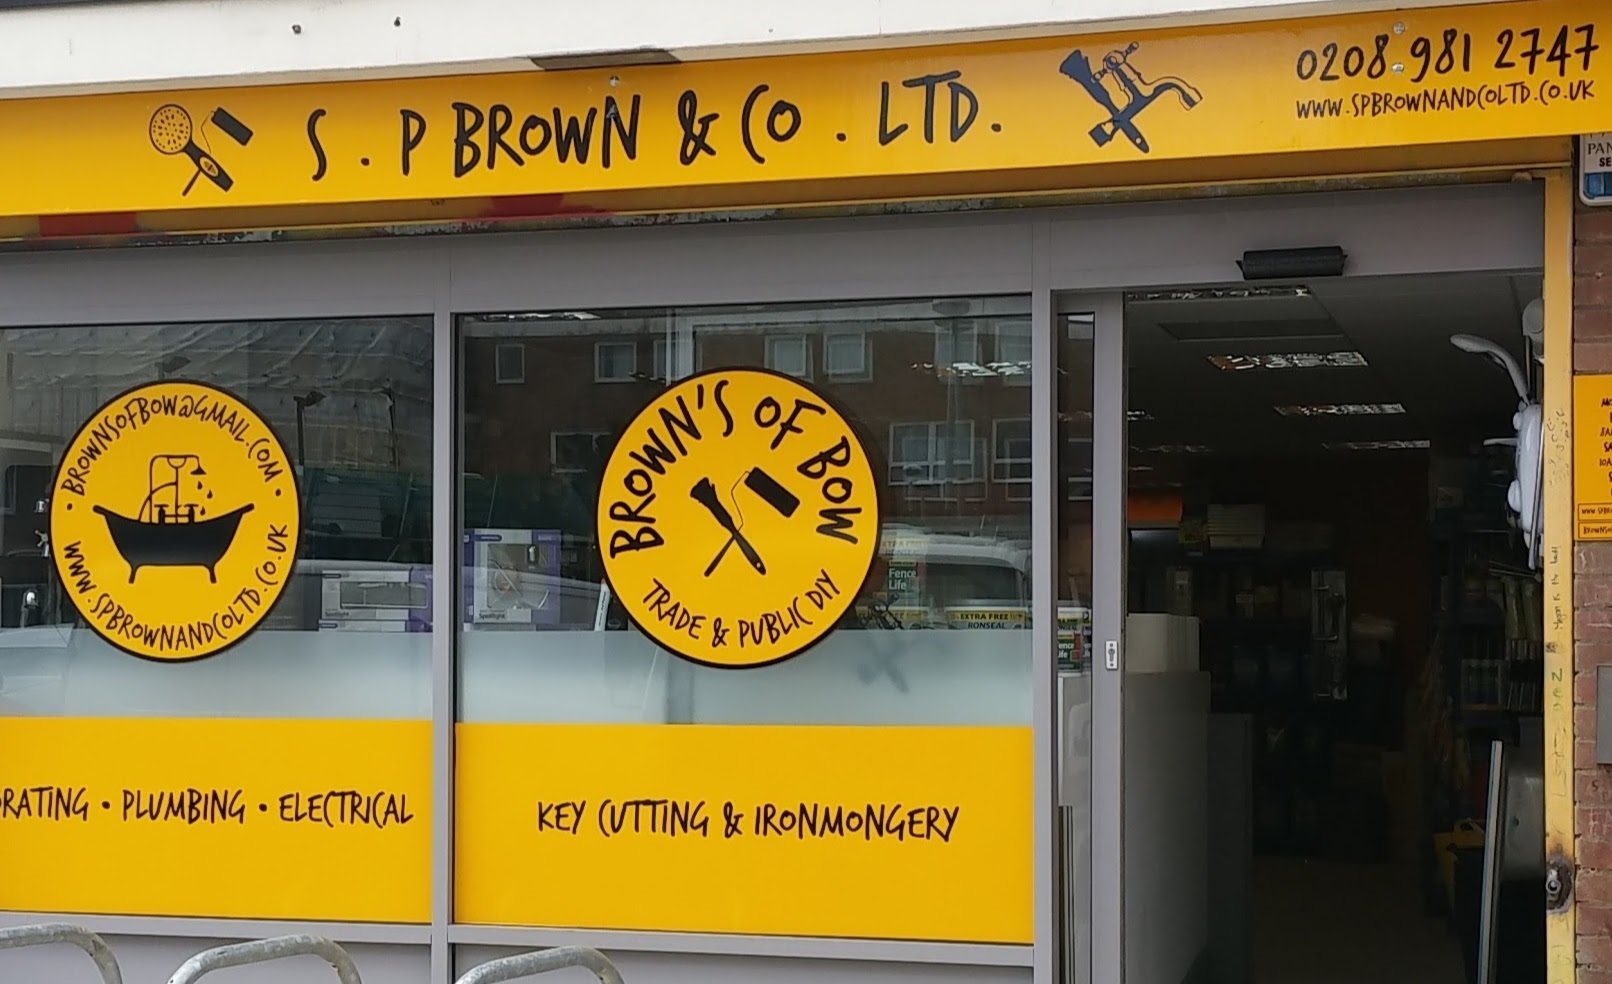 S p brown co ltd is a builders merchant in bow for How to find a reputable builder